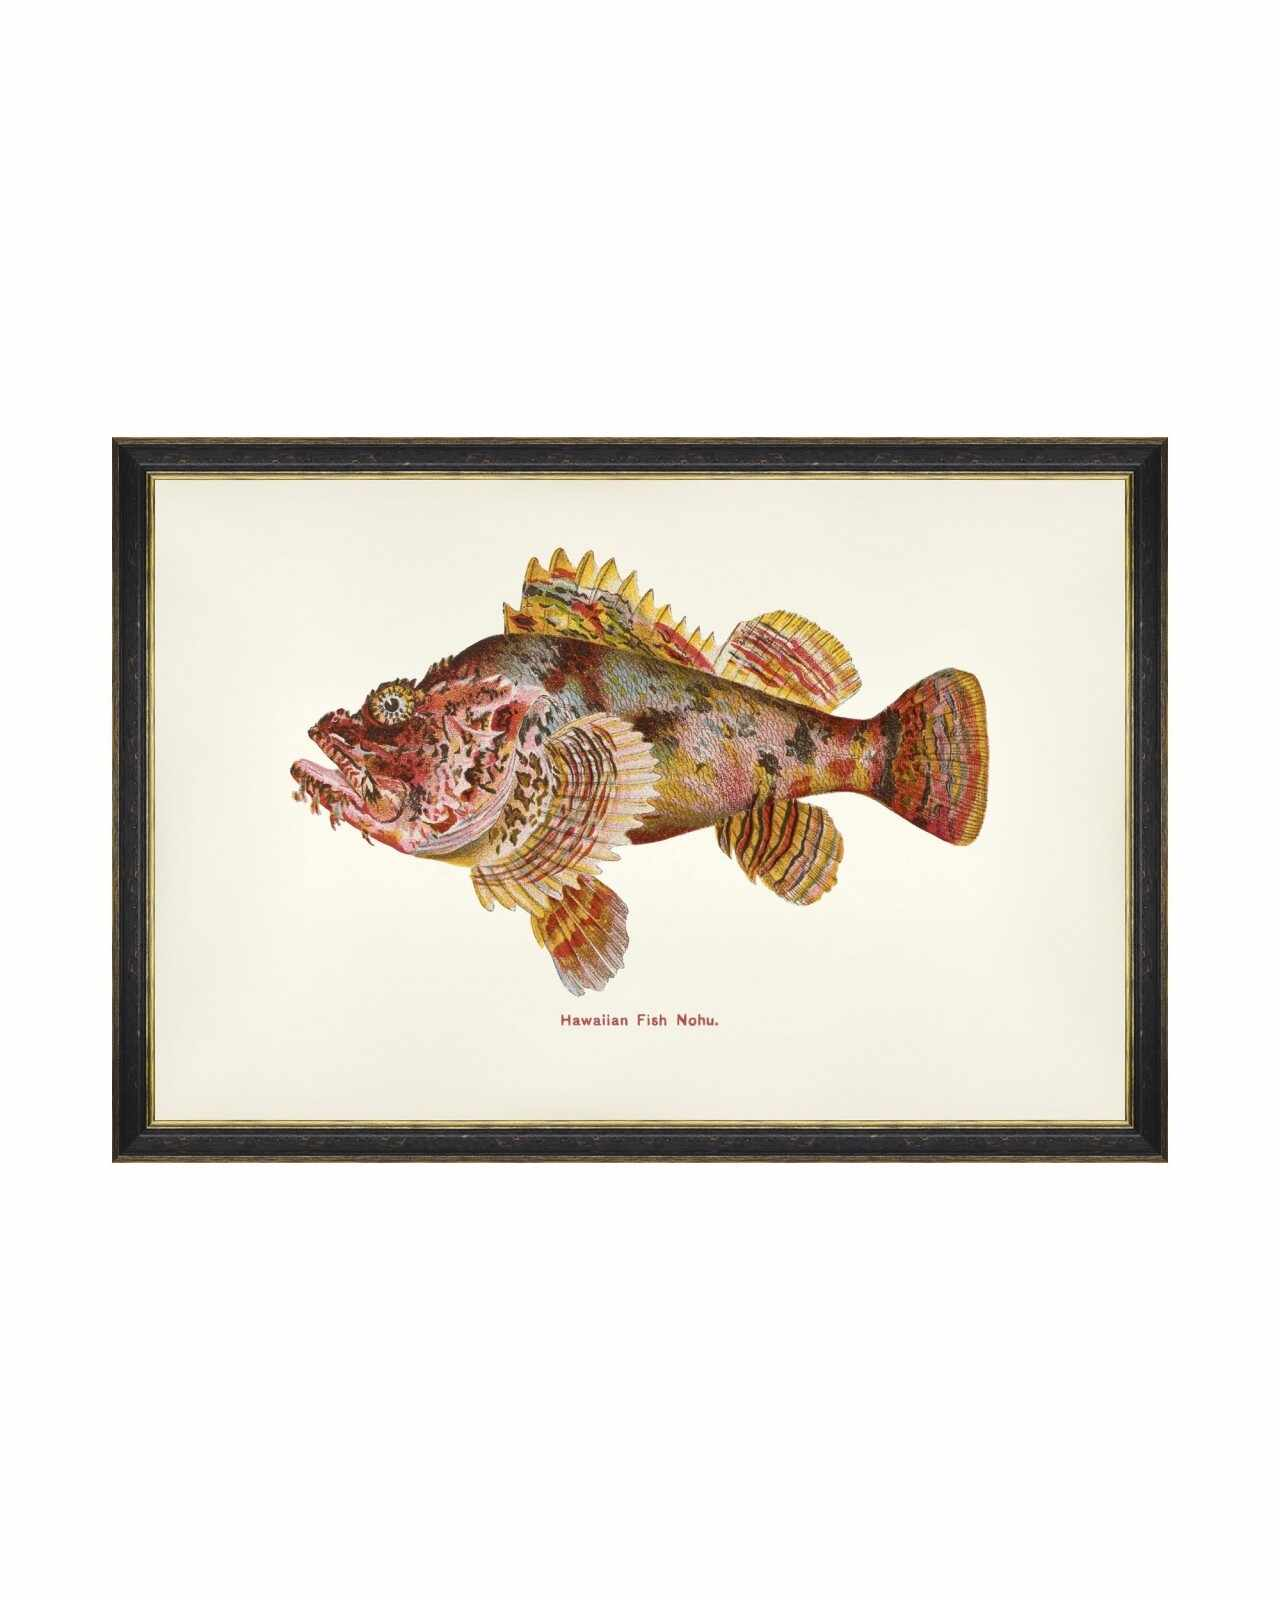 Tablou Framed Art Fishes Of Hawaii - Nohu Fish, 60 x 40 cm